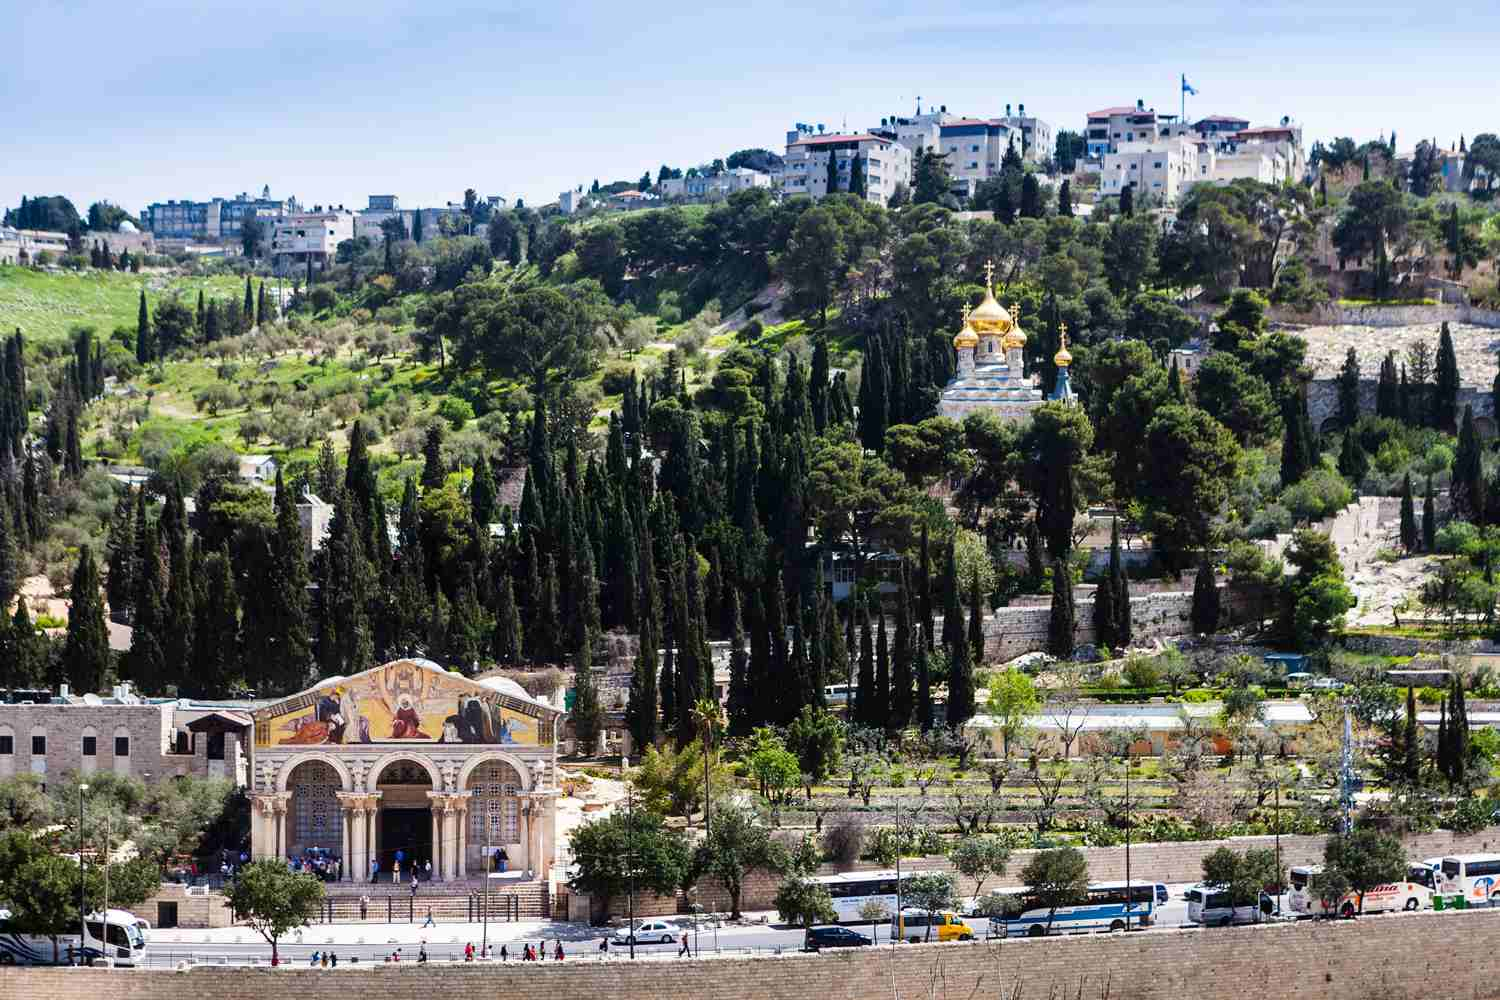 View of the Mount of Olives, with the Garden of Gethsemane on the lower part, and the Russian-style church of Saint Mary Magdalene, Jerusalem, Israel.